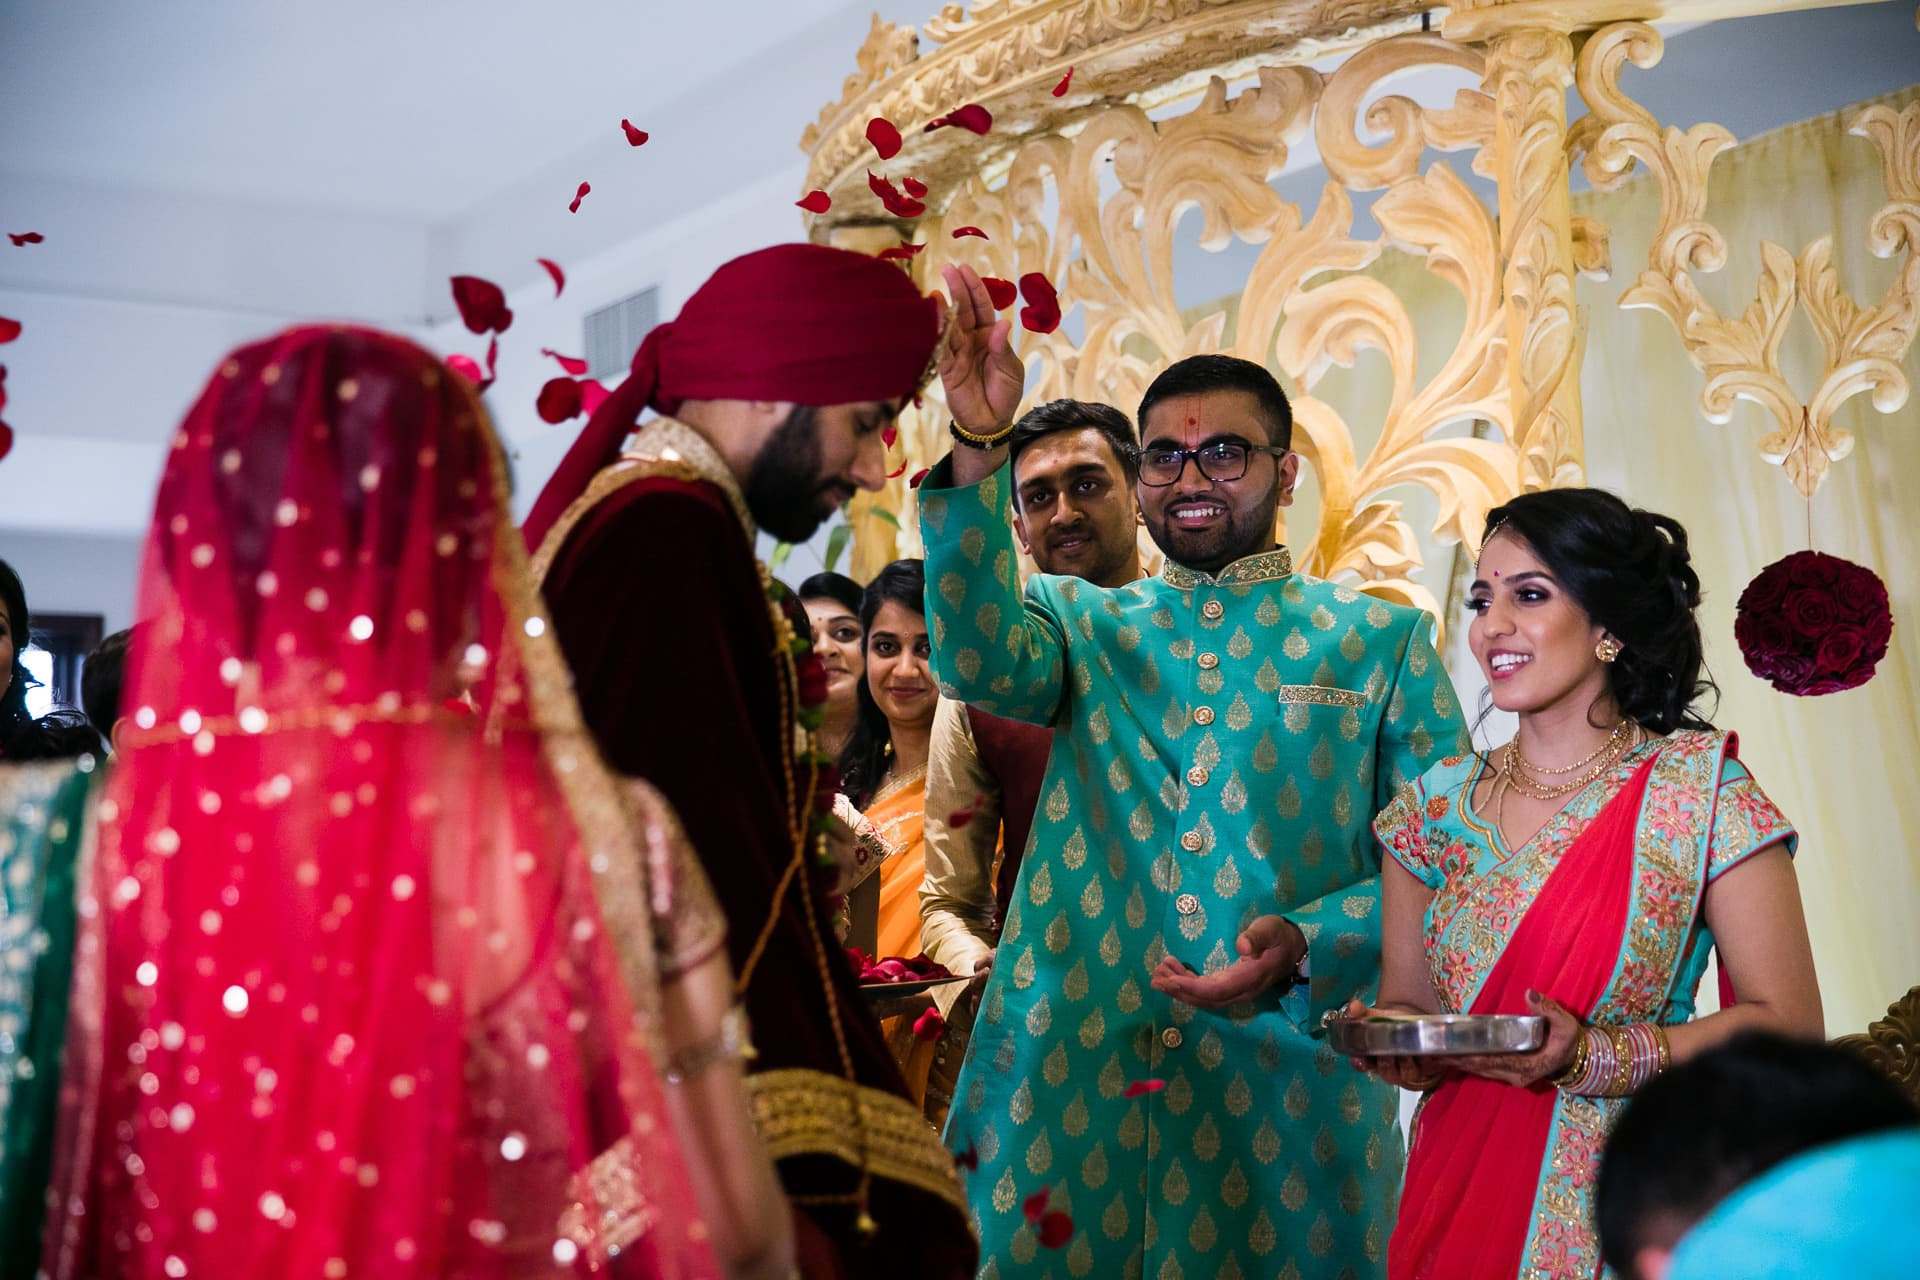 Hindu wedding ceremony performed by Milan Mehta